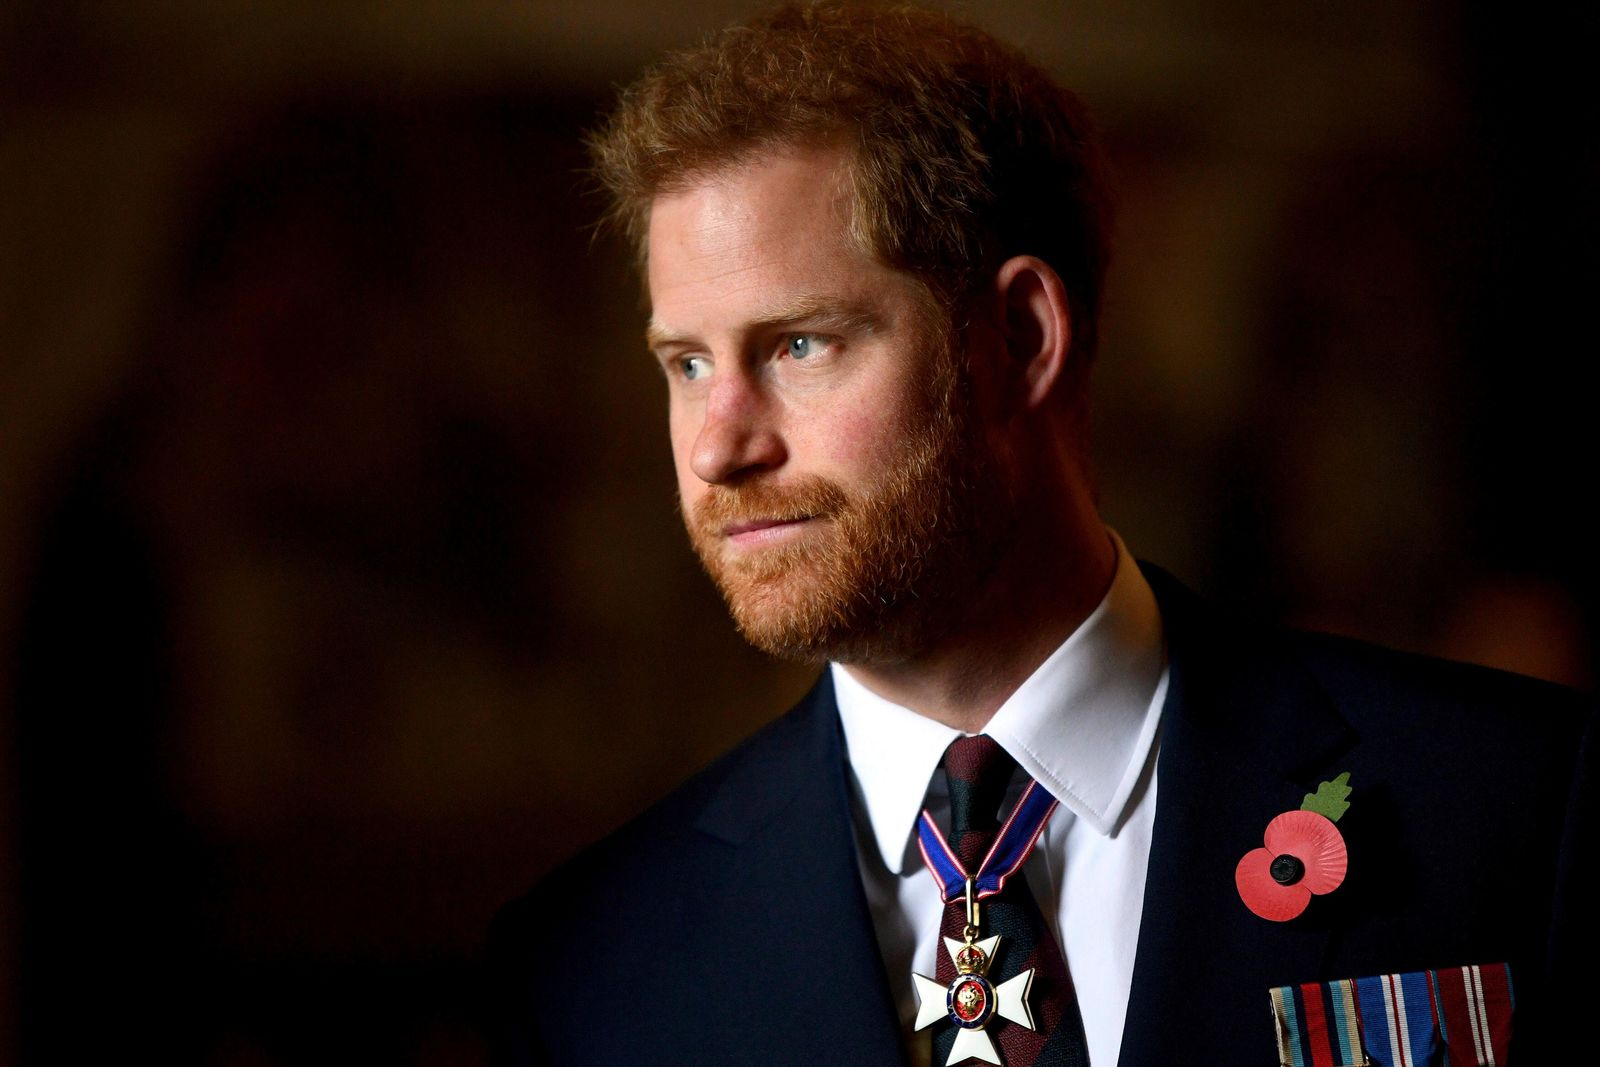 Britain's Prince Harry, the Duke of Sussex leaves the Anzac Day Service of Commemoration and Thanksgiving at Westminster Abbey, in London, Thursday April 25, 2019. (Victoria Jones/Pool Photo via AP)